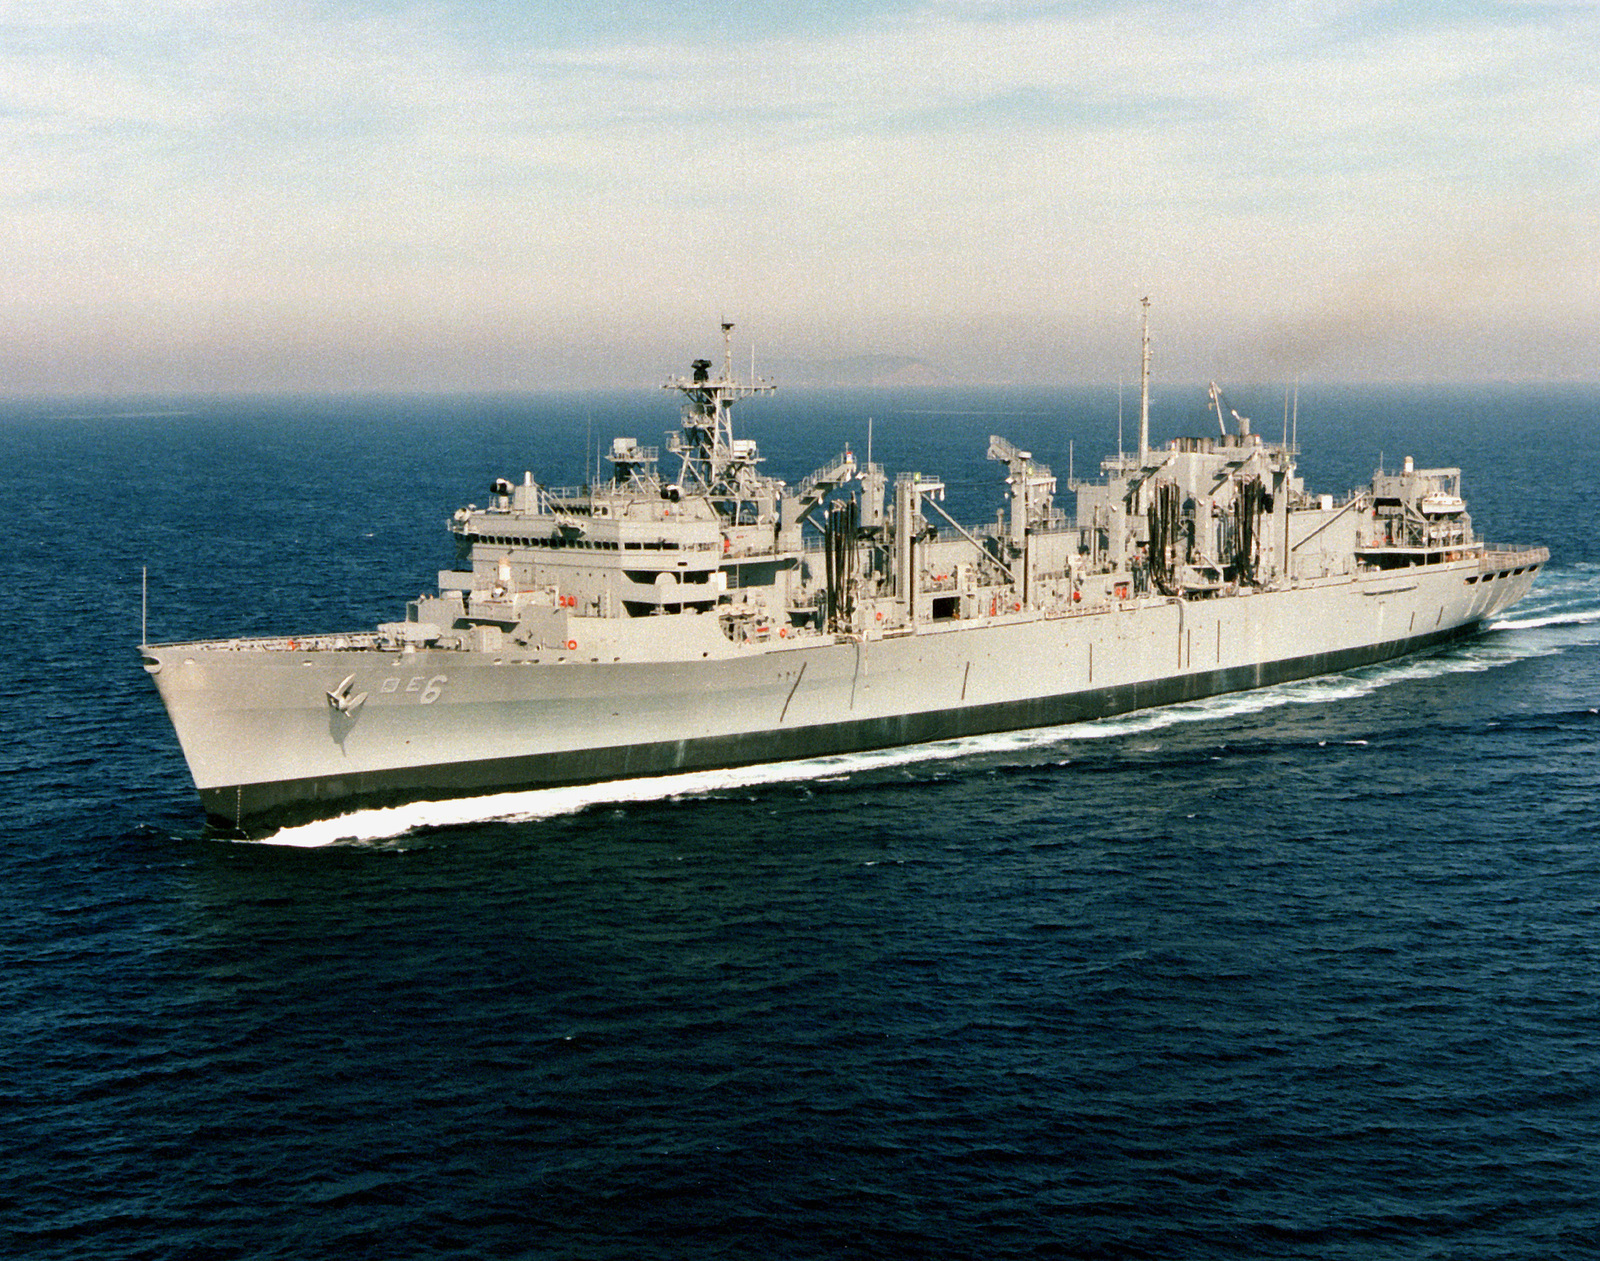 https://cdn10.picryl.com/photo/1993/12/14/port-bow-view-of-the-fast-combat-support-ship-uss-supply-aoe-6-underway-on-9f28ac-1600.jpg